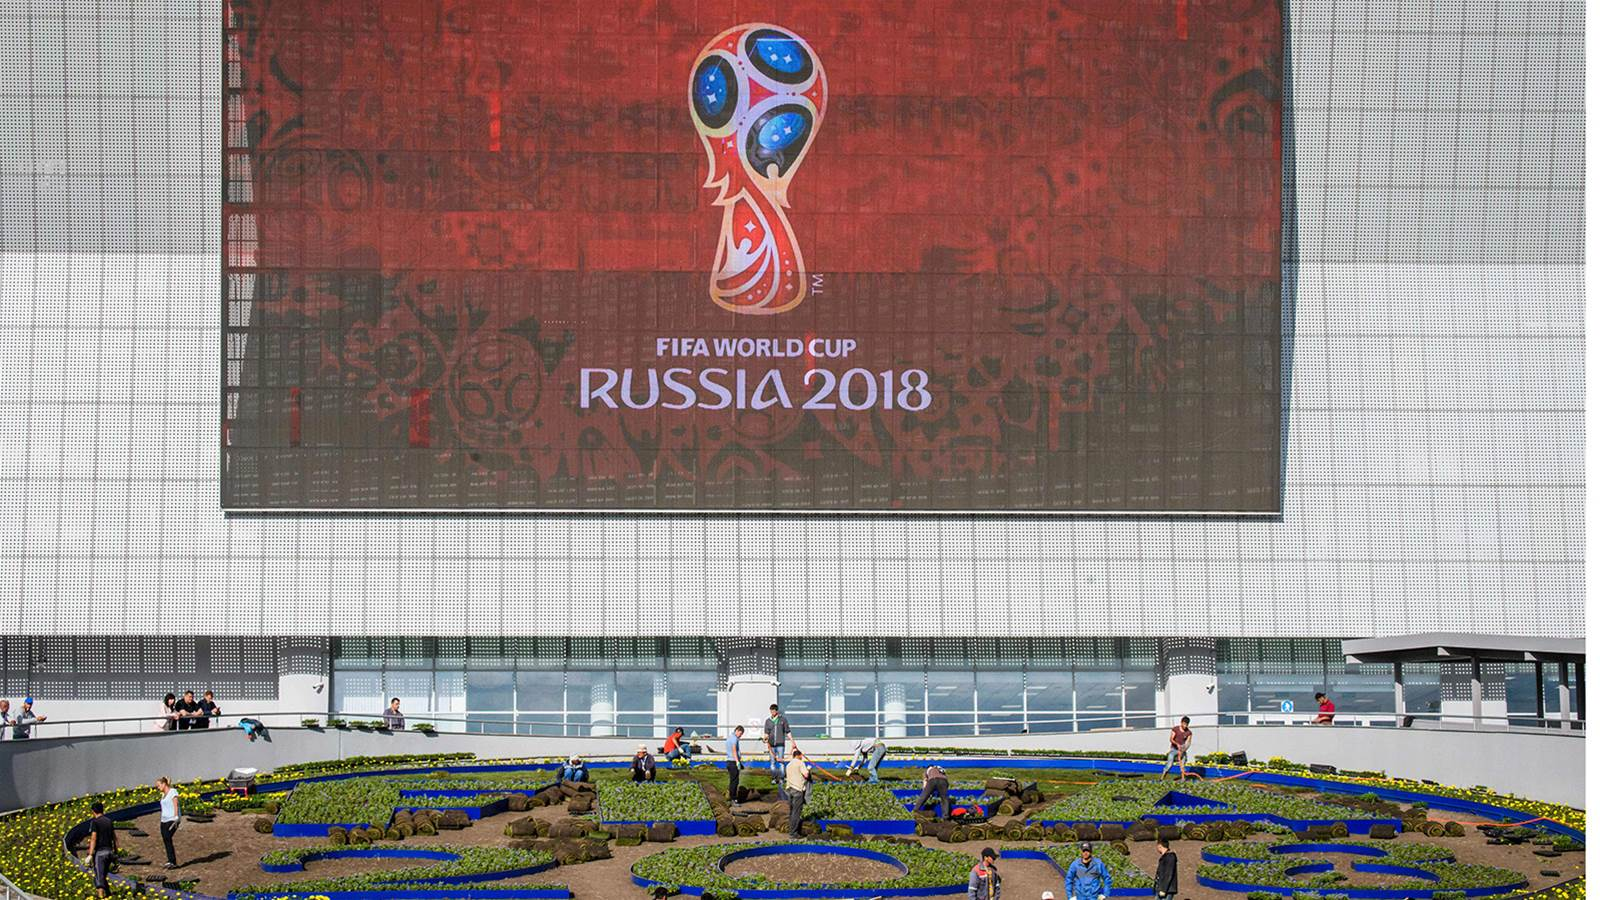 Rental Cost in Saransk Decreases Right Before the FIFA World Cup - Official